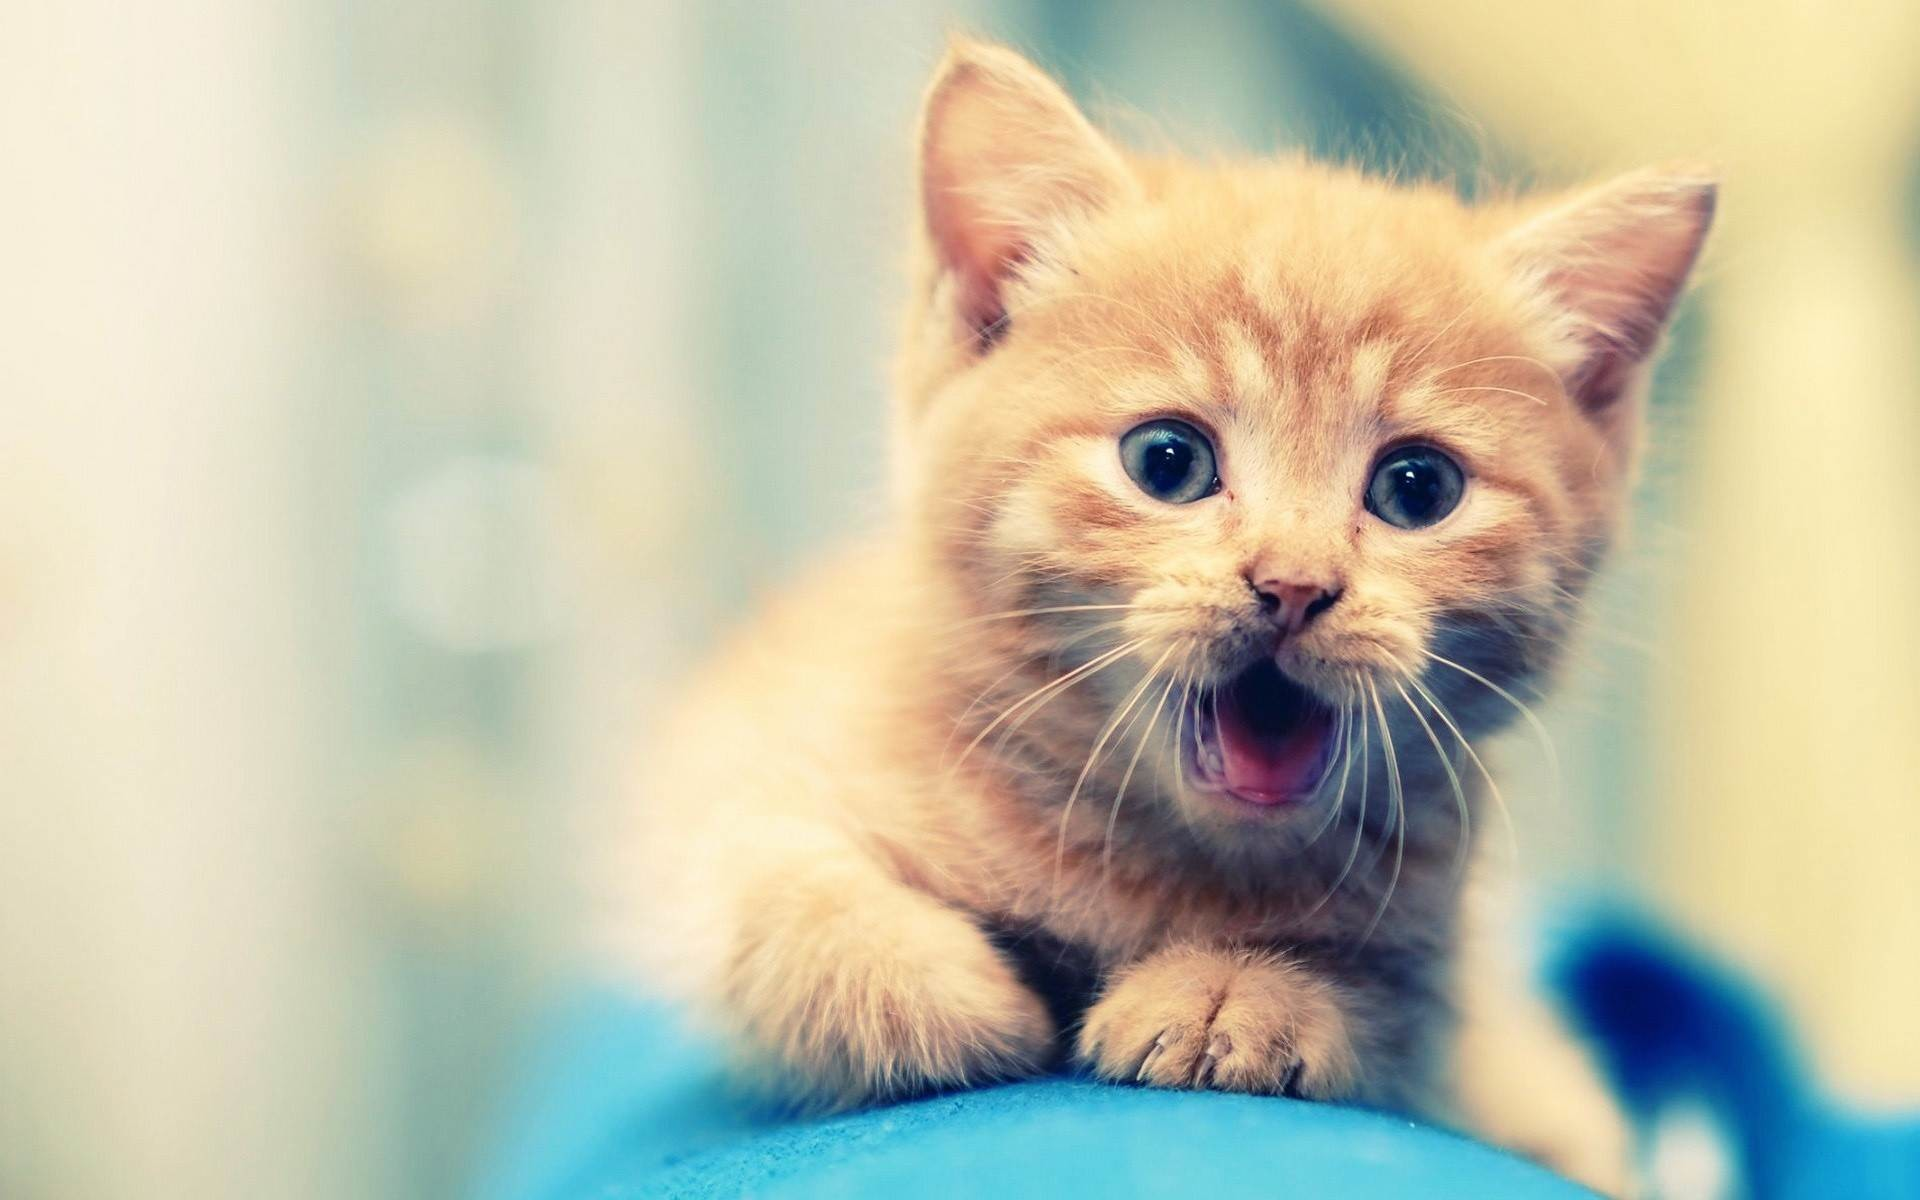 Cute Baby Animal Wallpapers | HD Wallpapers, Backgrounds, Images, Art  Photos. HD